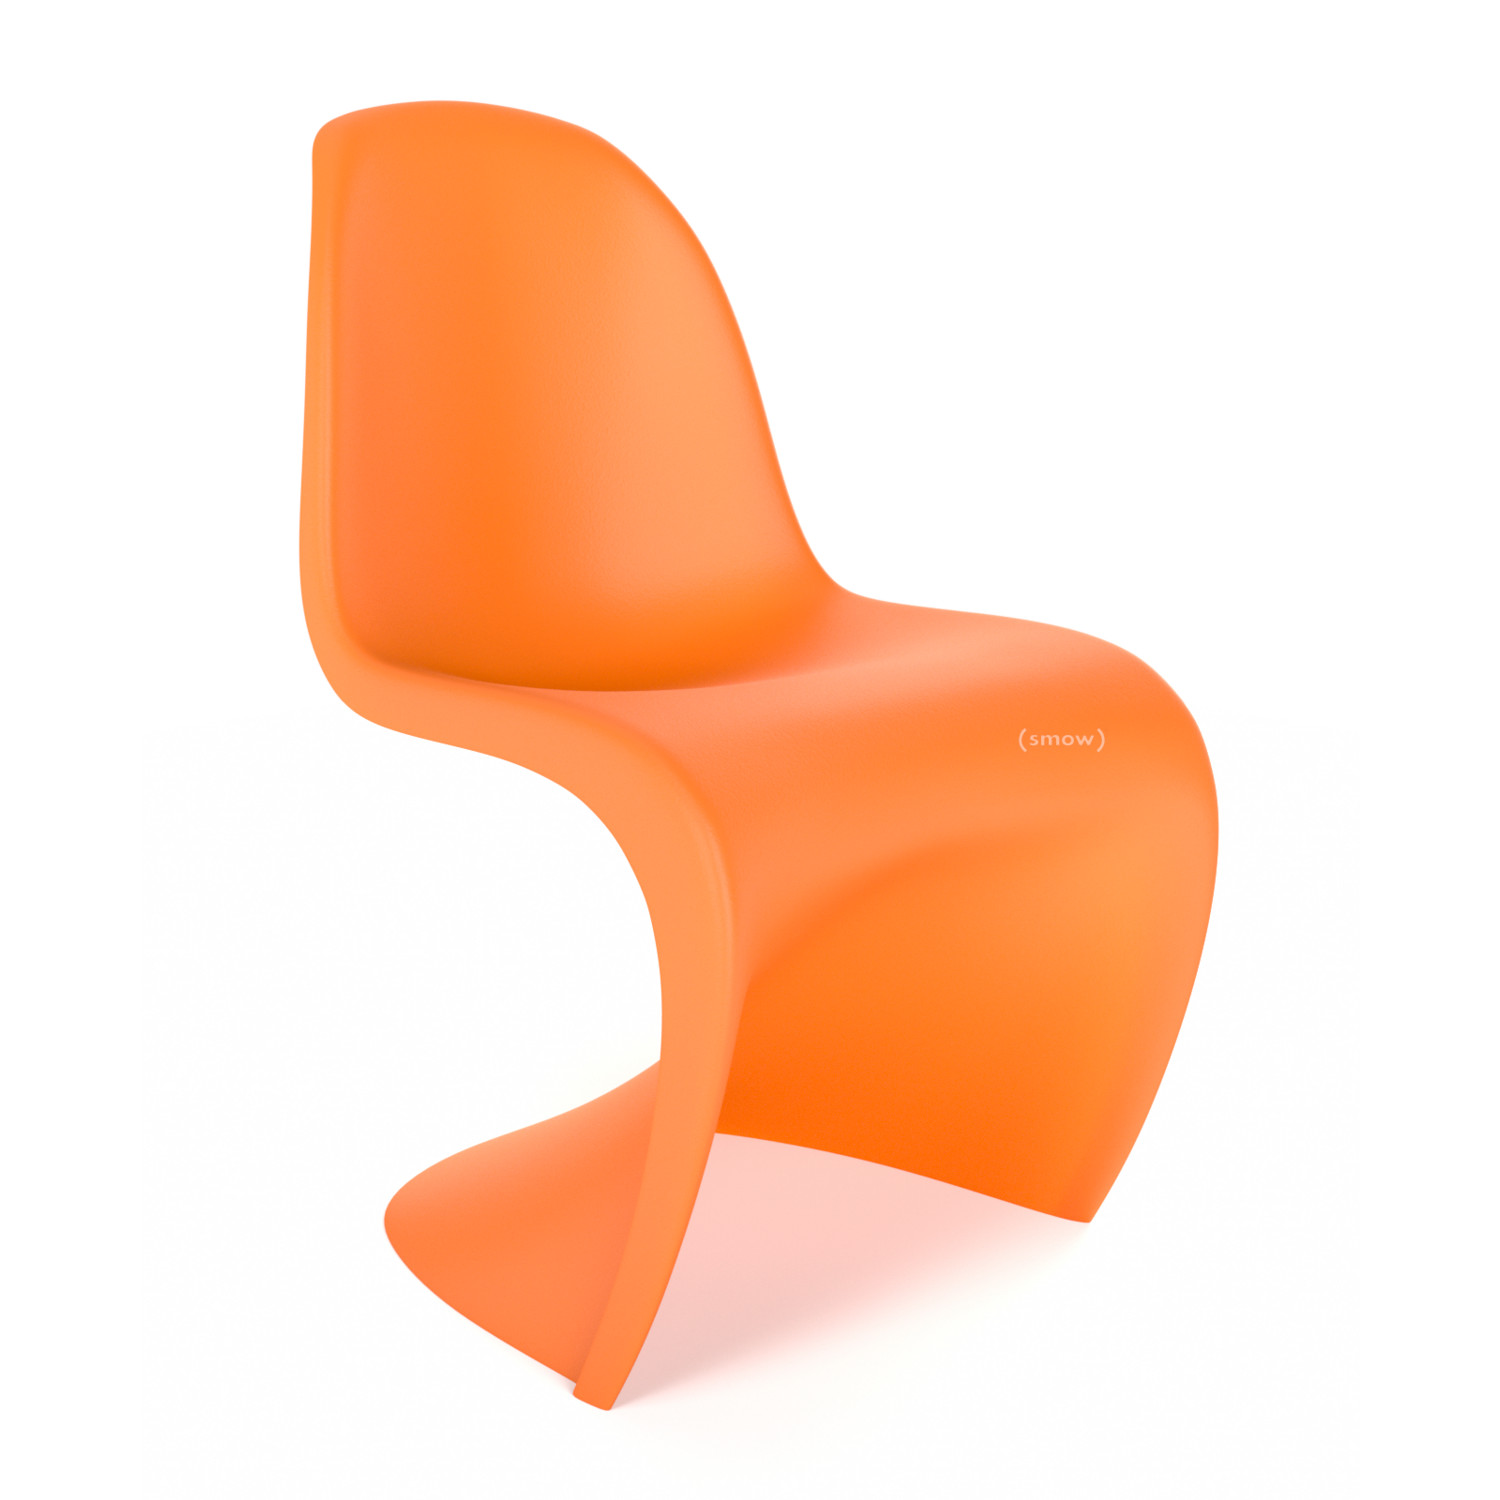 vitra panton chair tangerine by verner panton 1999 designer furniture by. Black Bedroom Furniture Sets. Home Design Ideas